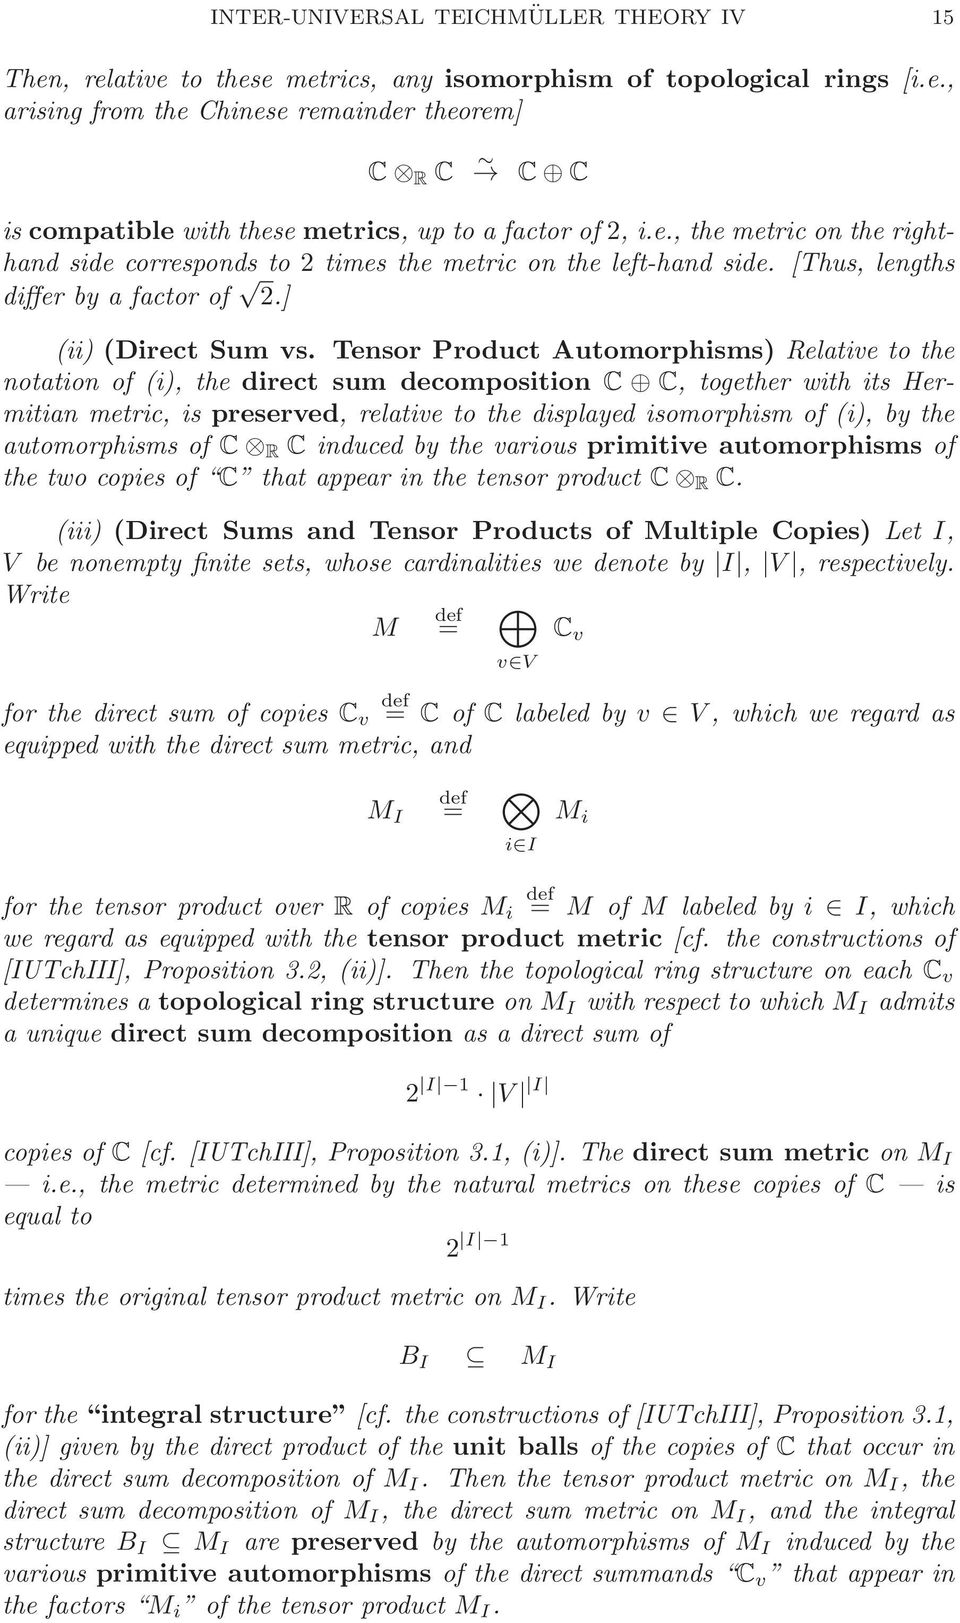 Tensor Product Automorphisms) Relative to the notation of (i), the direct sum decomposition C C, together with its Hermitian metric, is preserved, relative to the displayed isomorphism of (i), by the